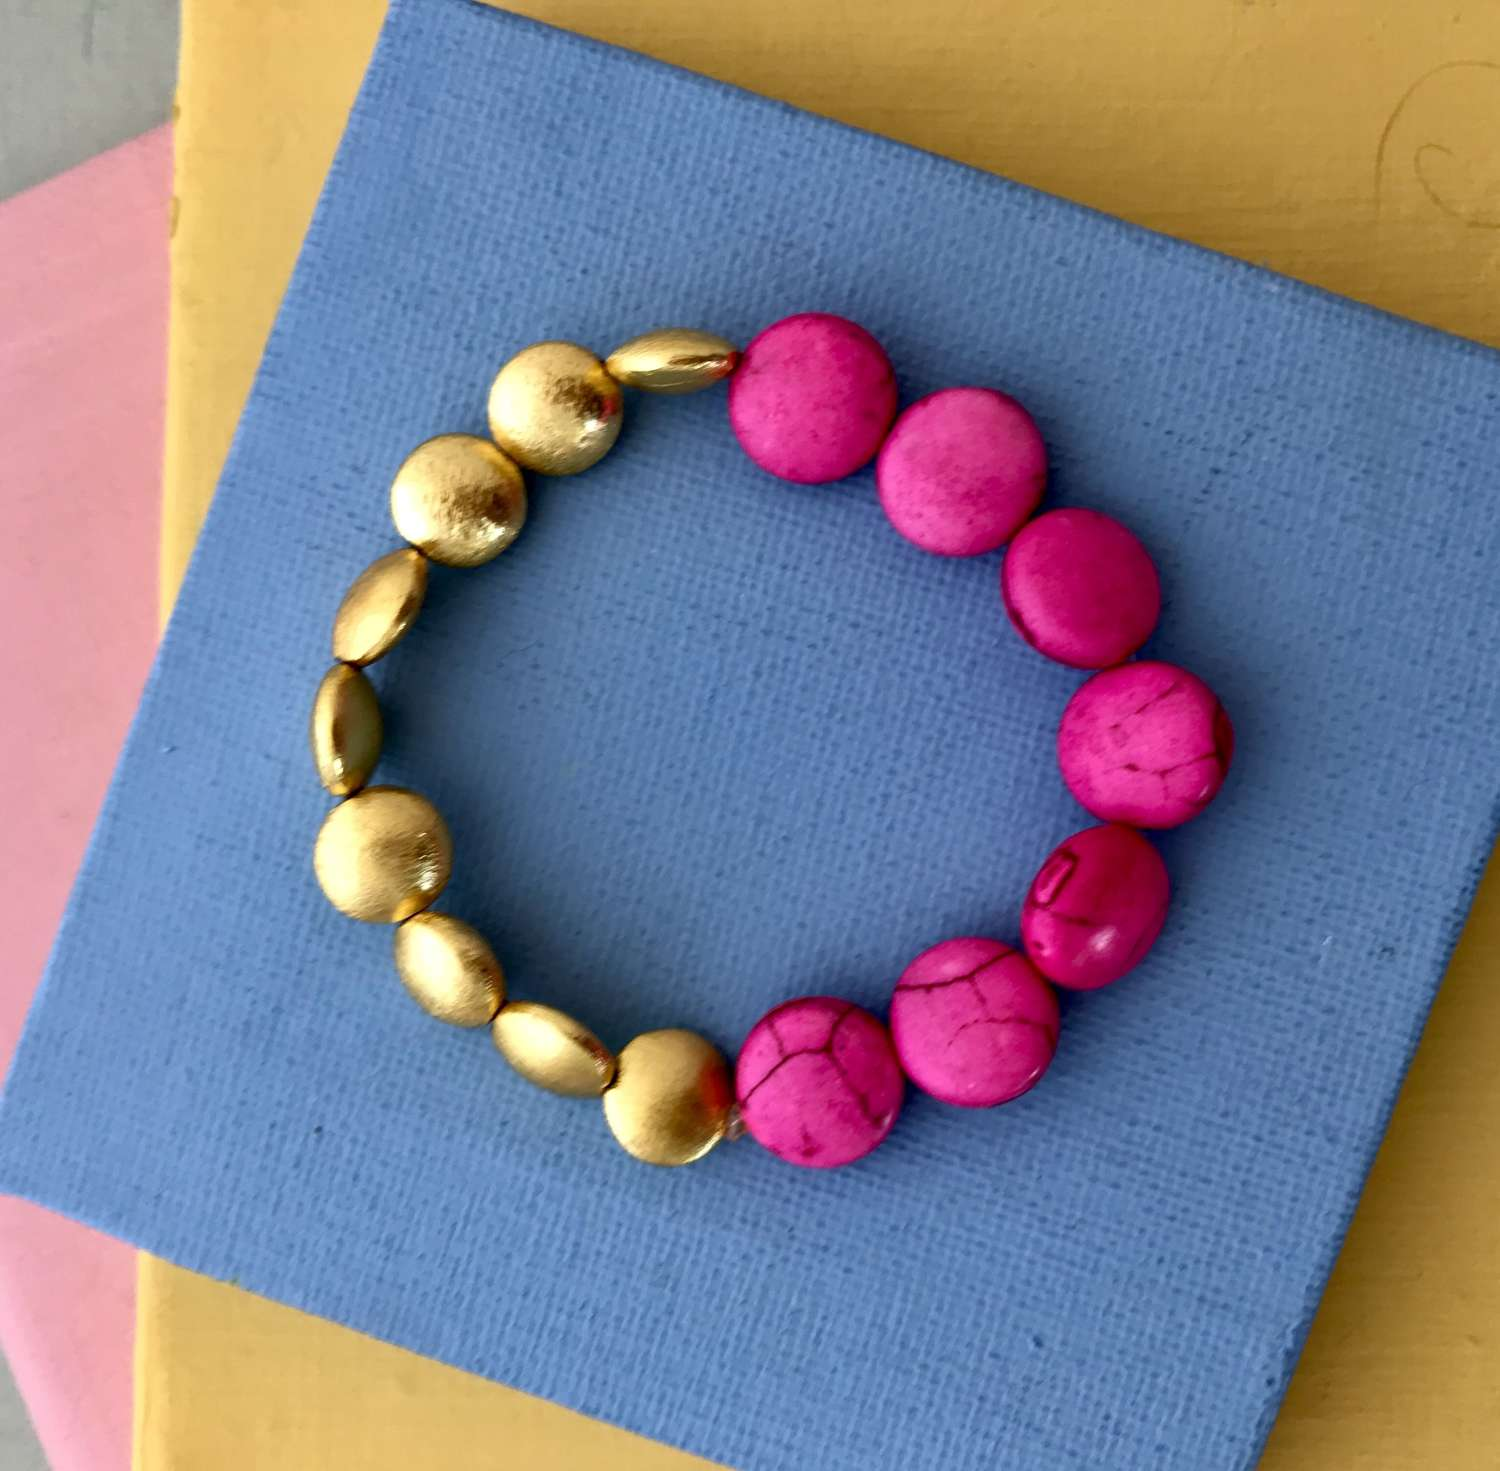 Annie bracelet in candy pink and gold